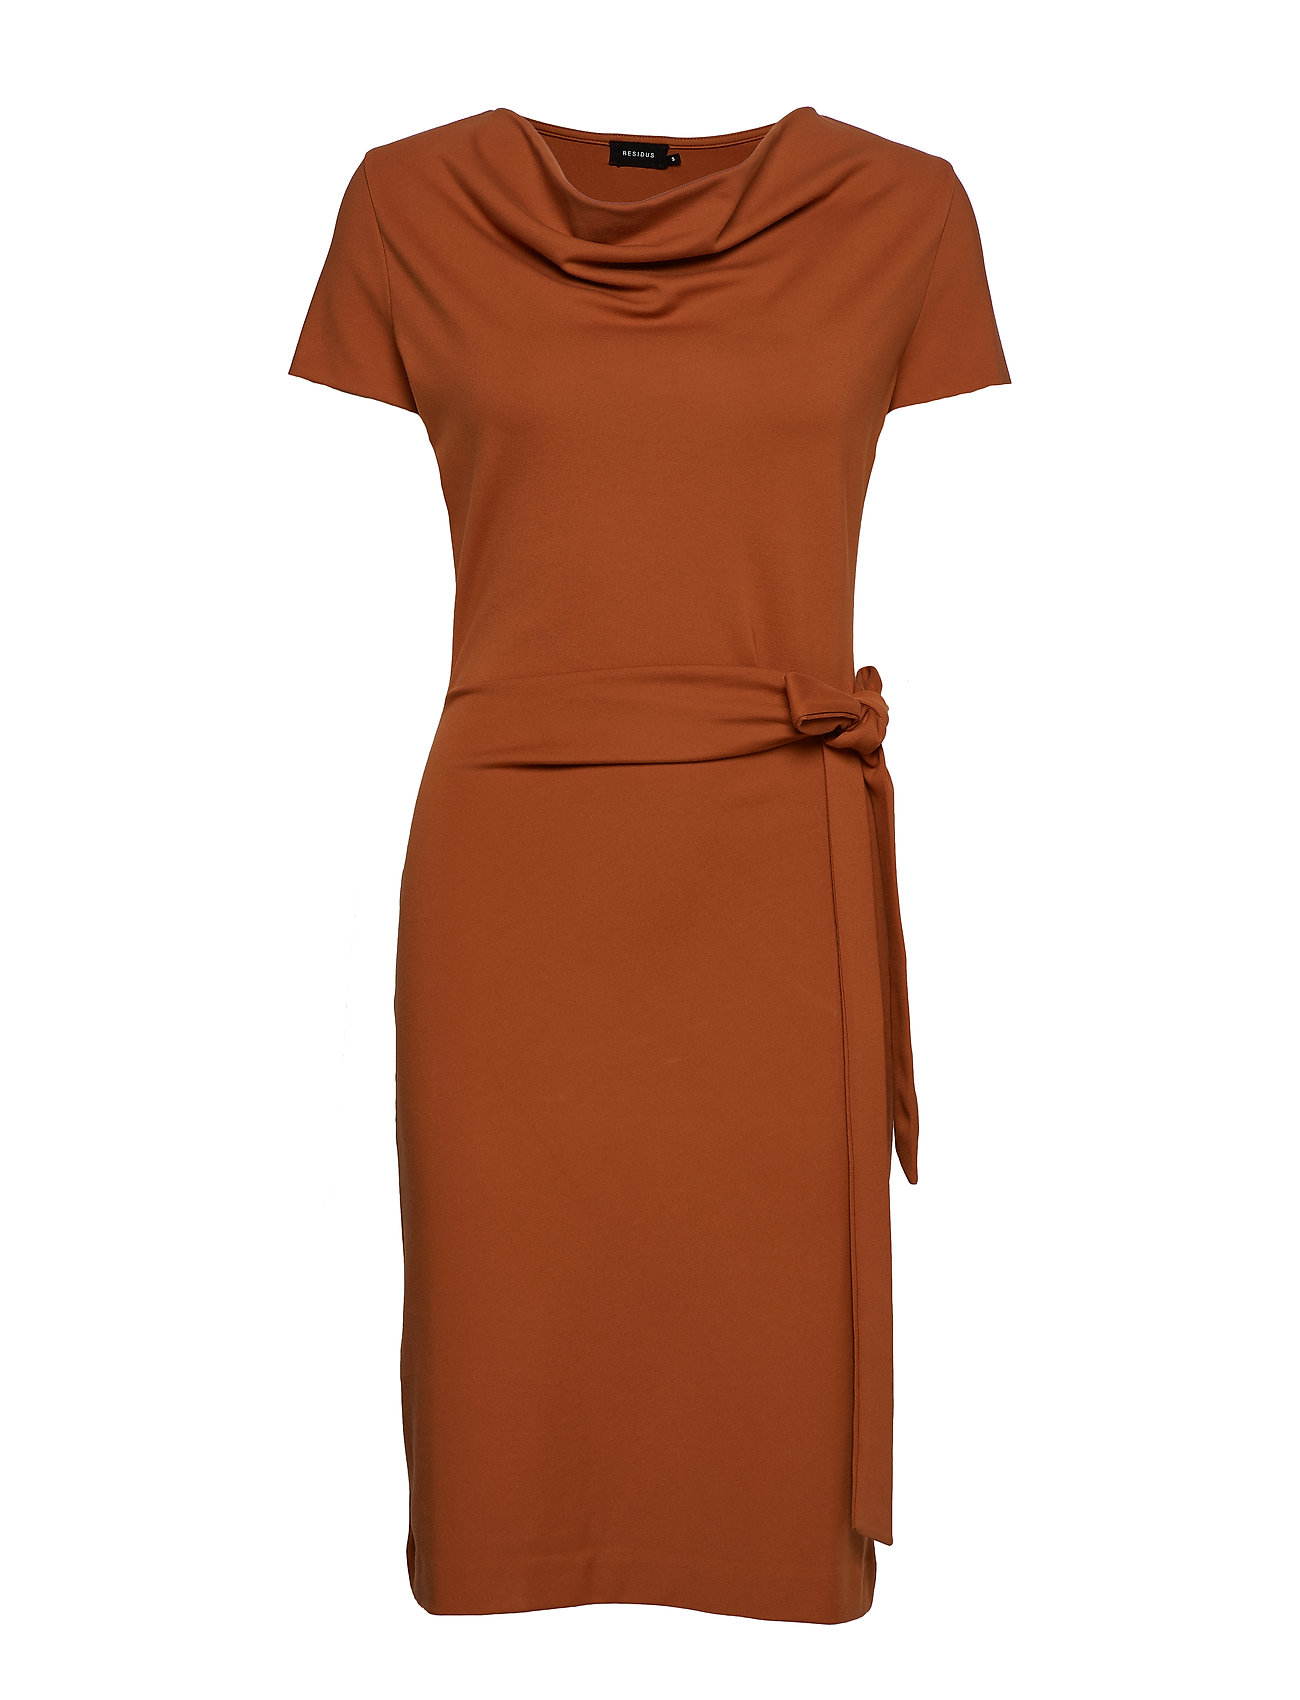 Residus LILY DRESS - WARM COGNAC